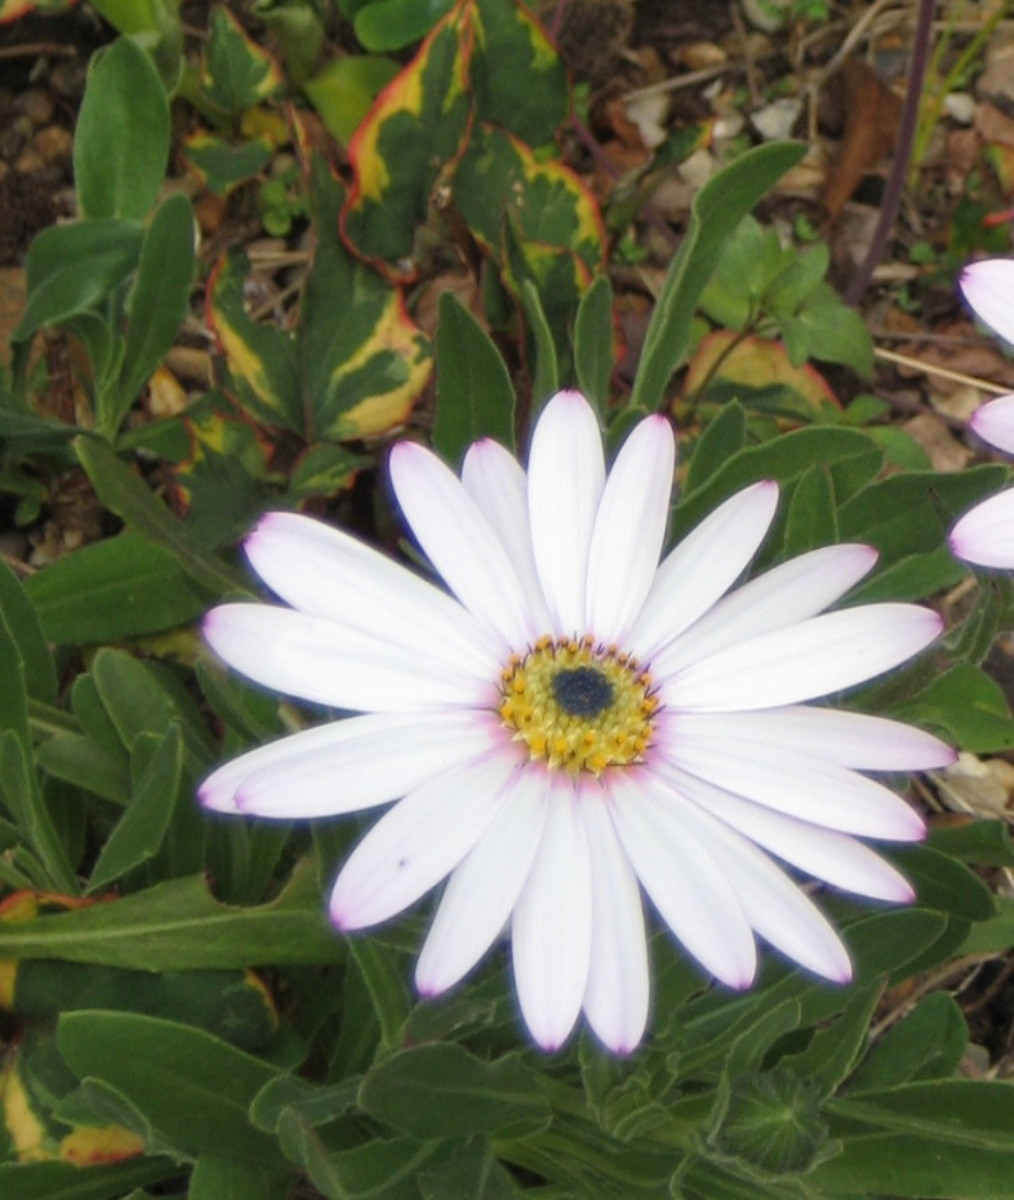 Photo: Osteospermum flower also called cape daisy.